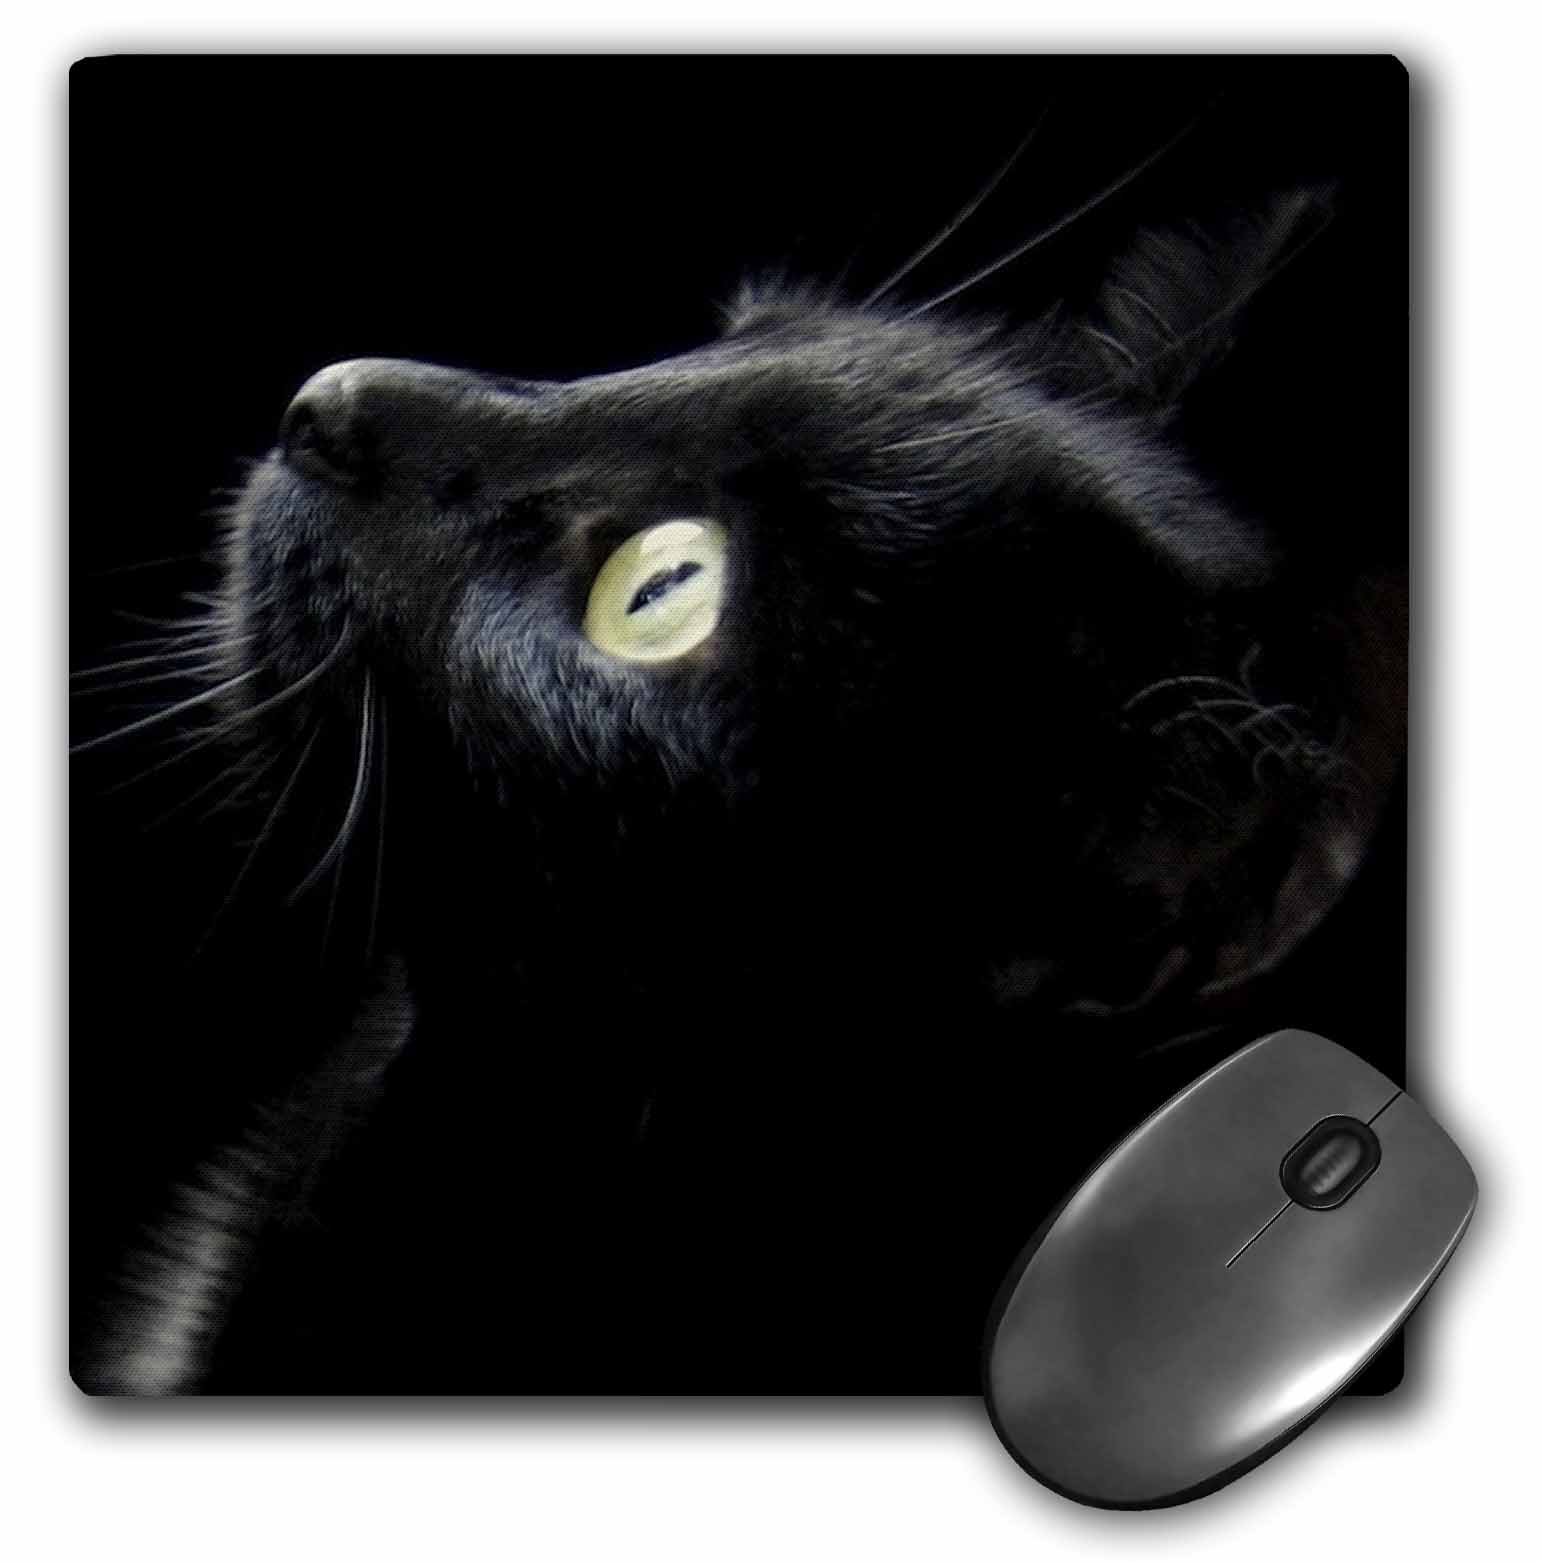 3dRose black cat face, Mouse Pad, 8 by 8 inches